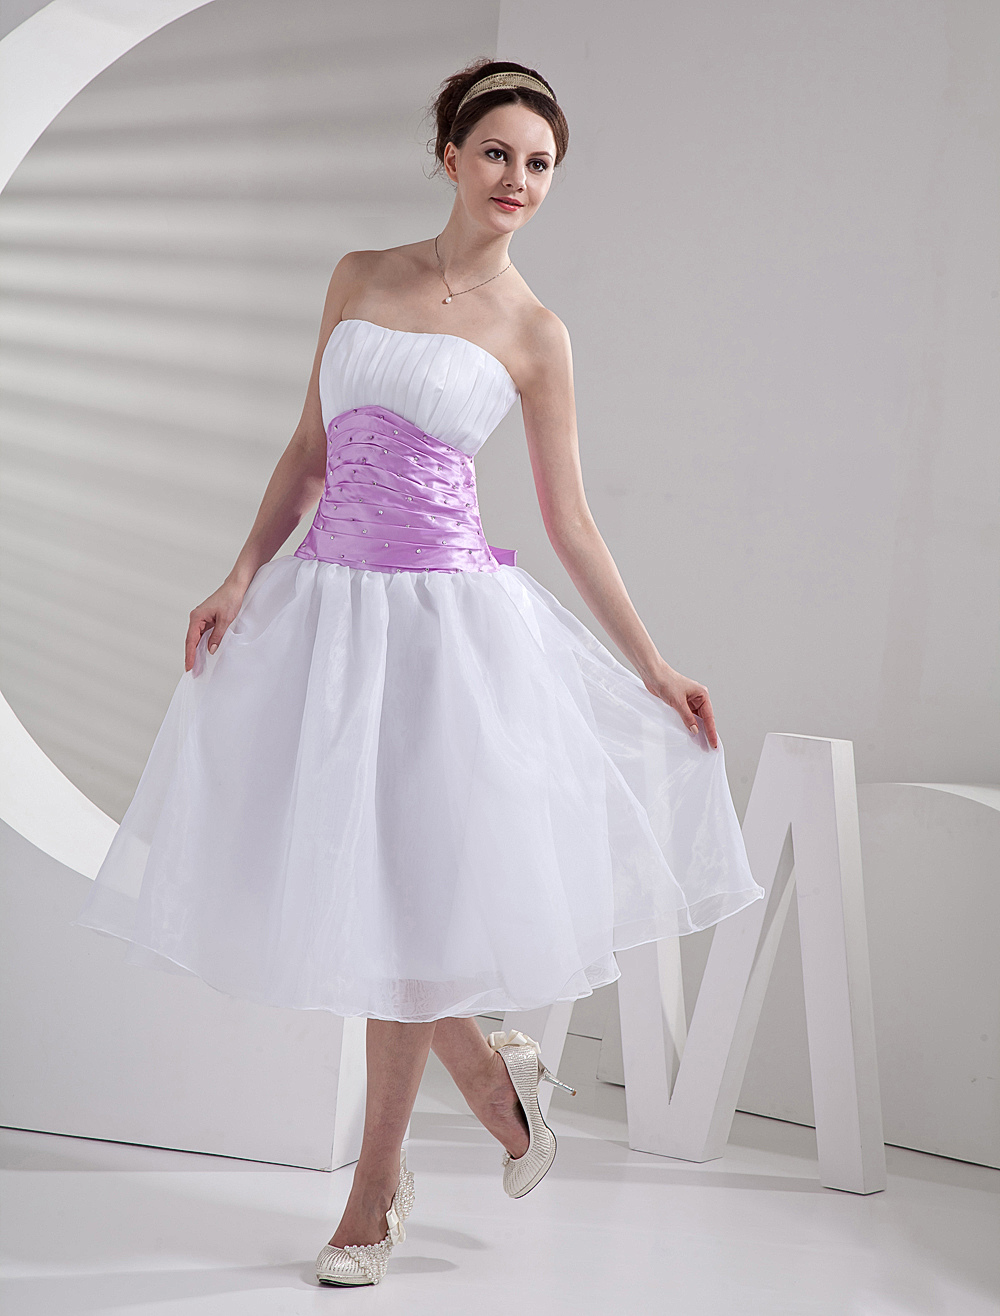 Cute White Strapless Pink Sash Beaded Cocktail Dress (Wedding Cheap Party Dress) photo